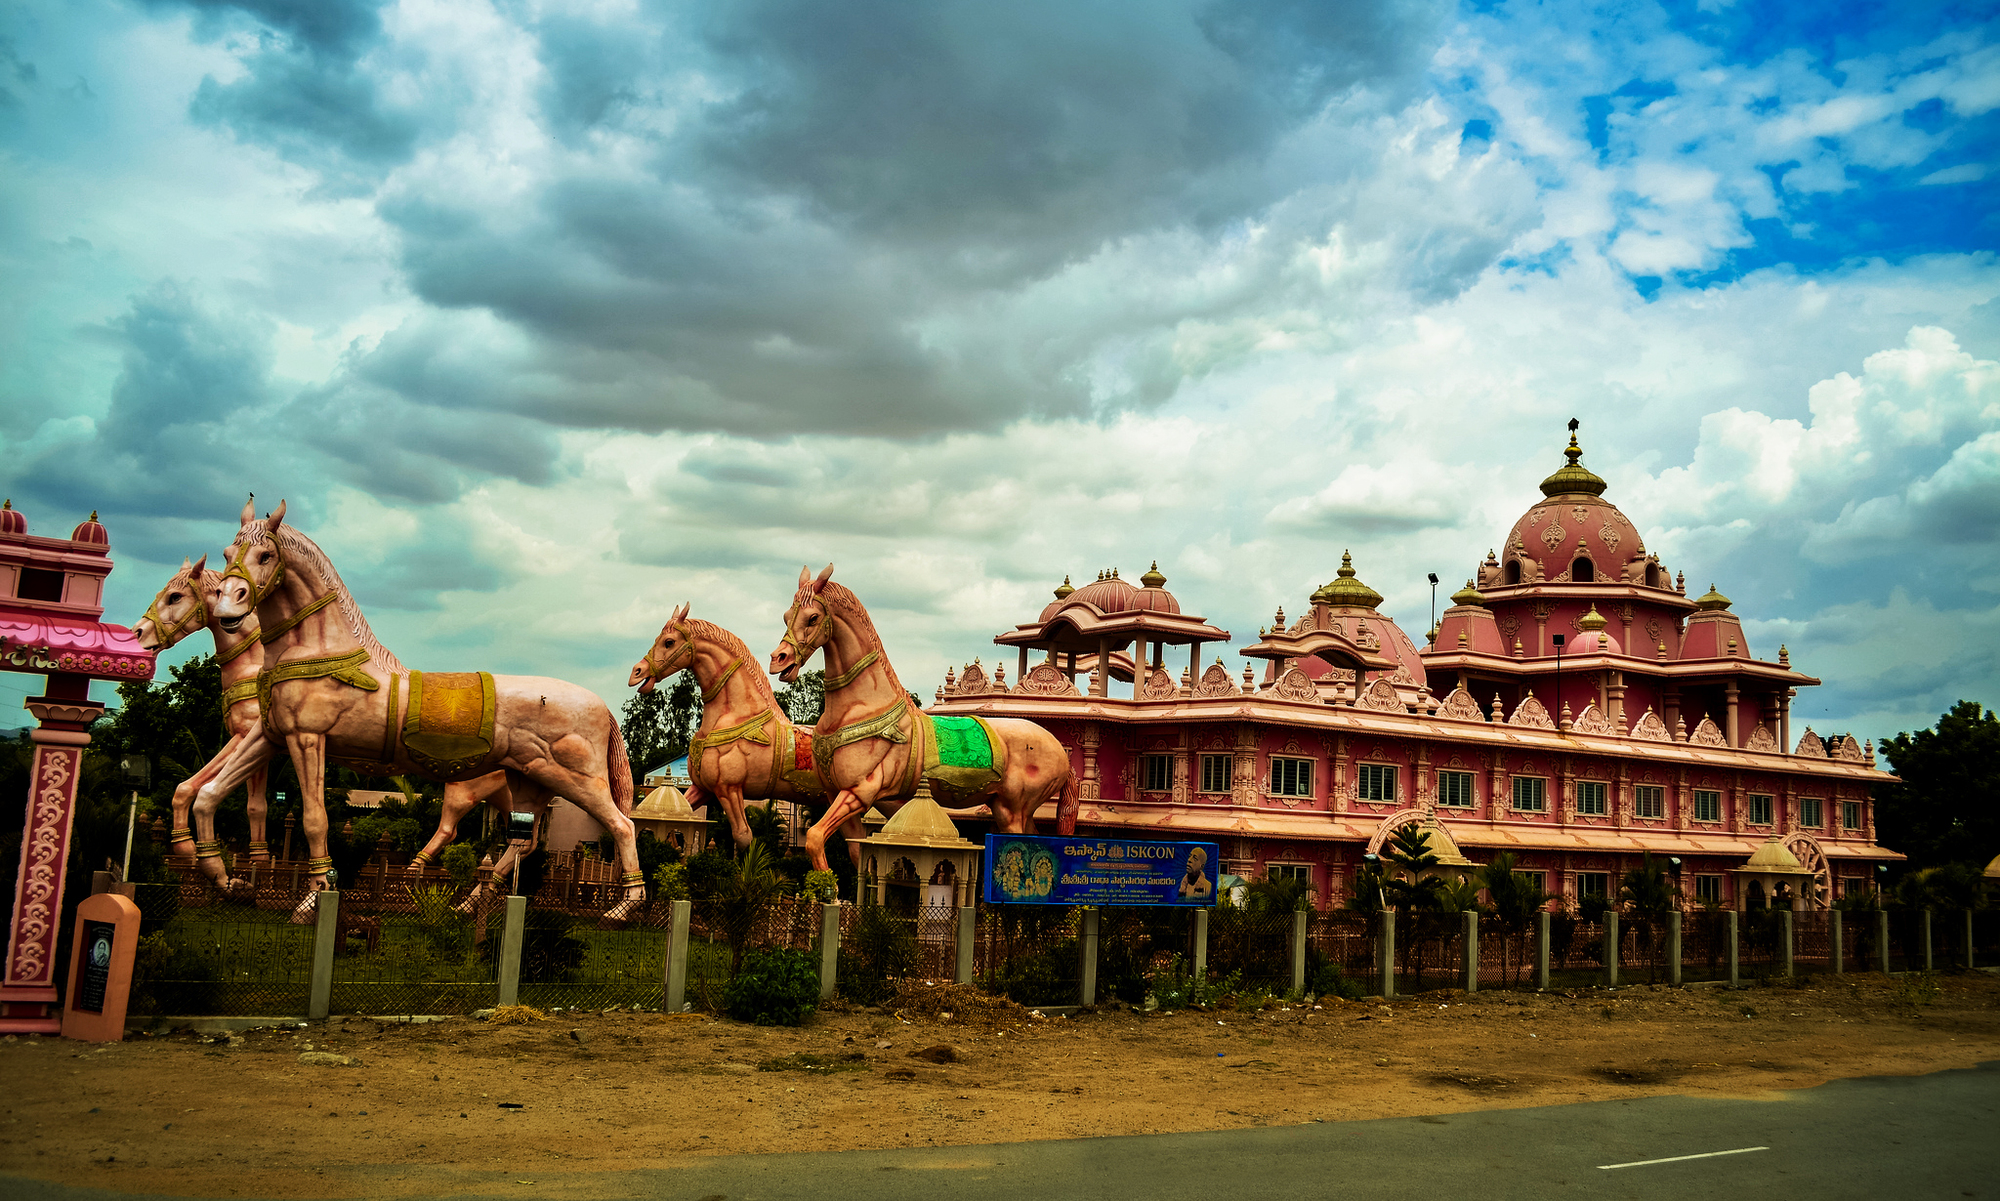 essay on tourist places in india Famous historical places in india by tripoto major tourist spots in india chhatarpur temple edit chhatarpur temple is located at chhatarpuris the essay largest temple complex in india, and is dedicated tourist goddess, katyayani st.